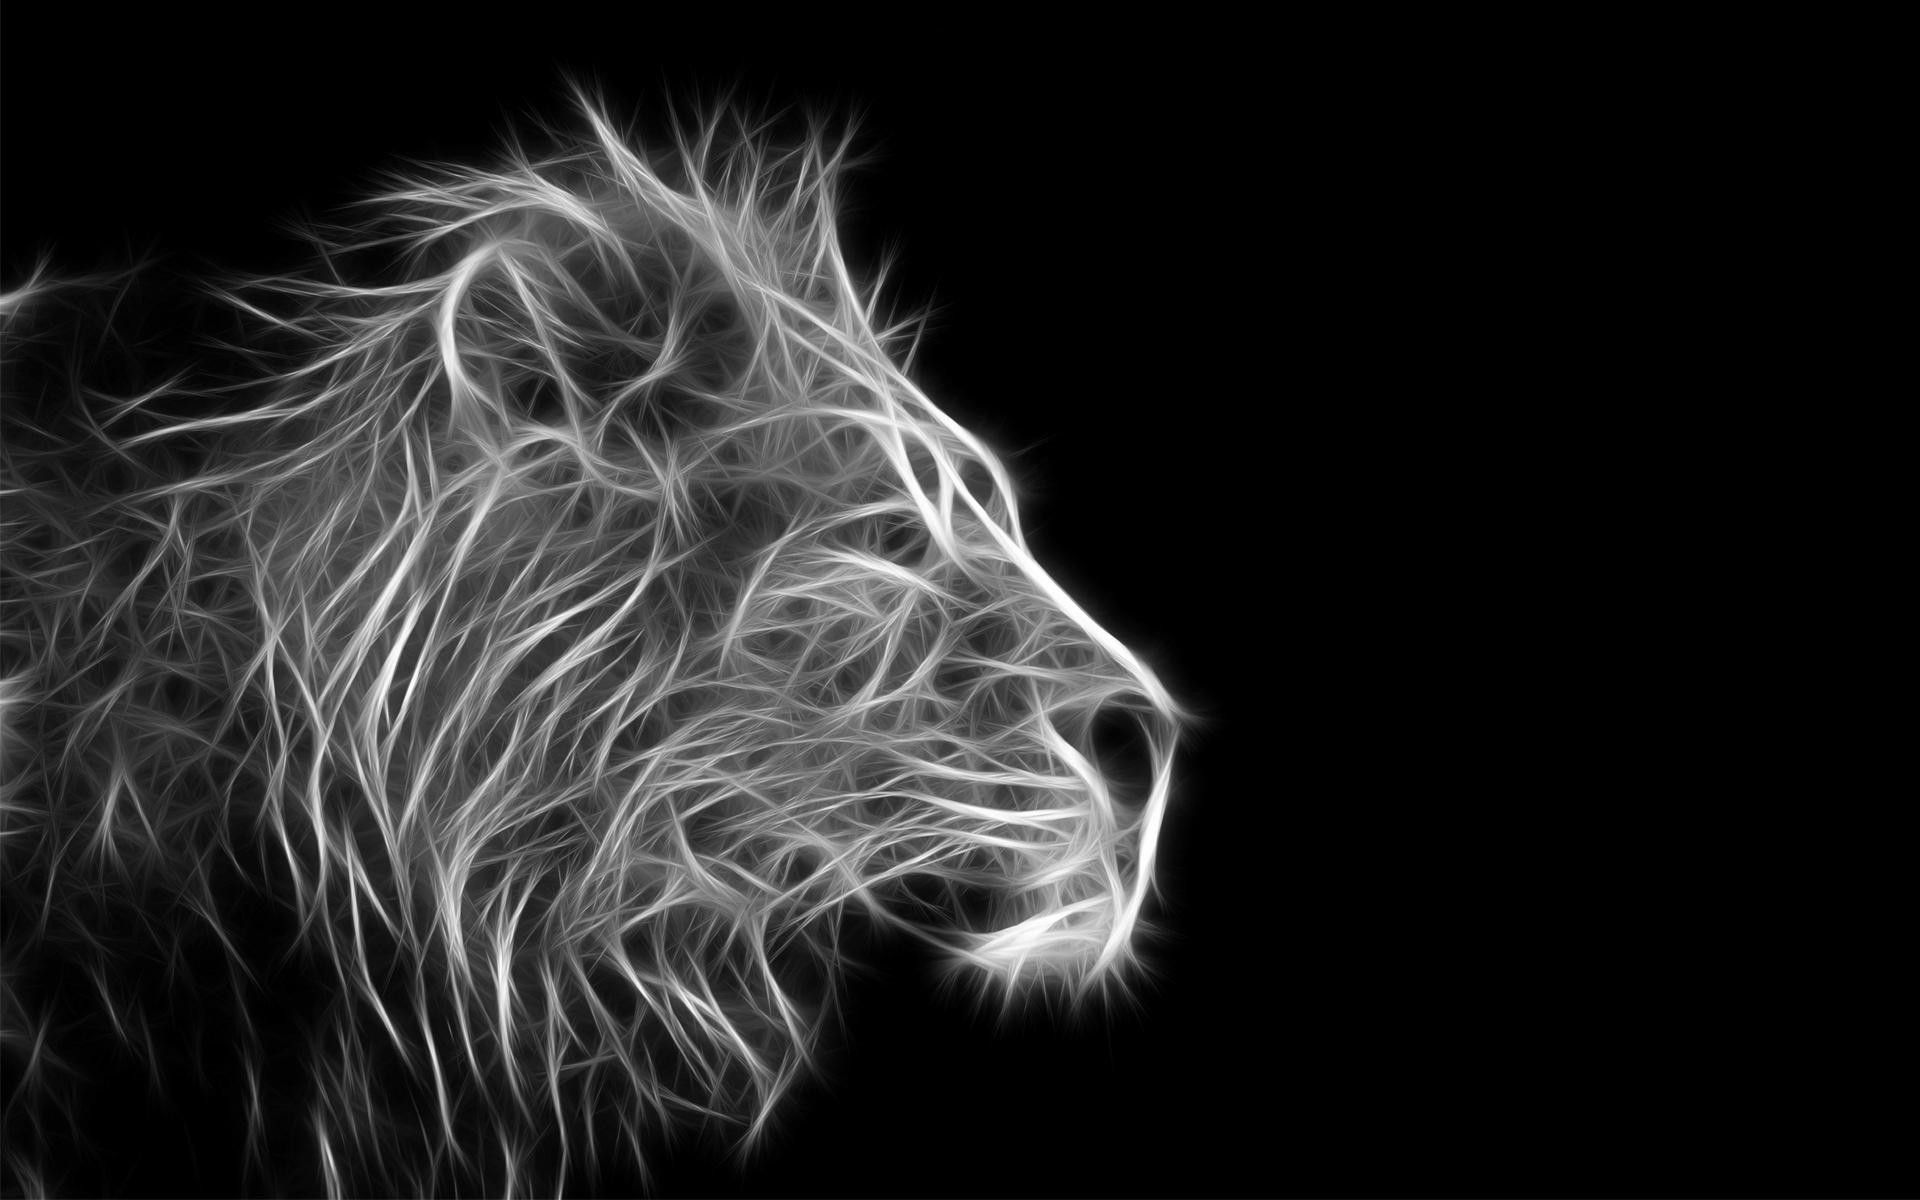 Awesome Black Lion Pictures Wallpaper Wallpaper In 2020 Animal Wallpaper Lion Wallpaper Black And White Background